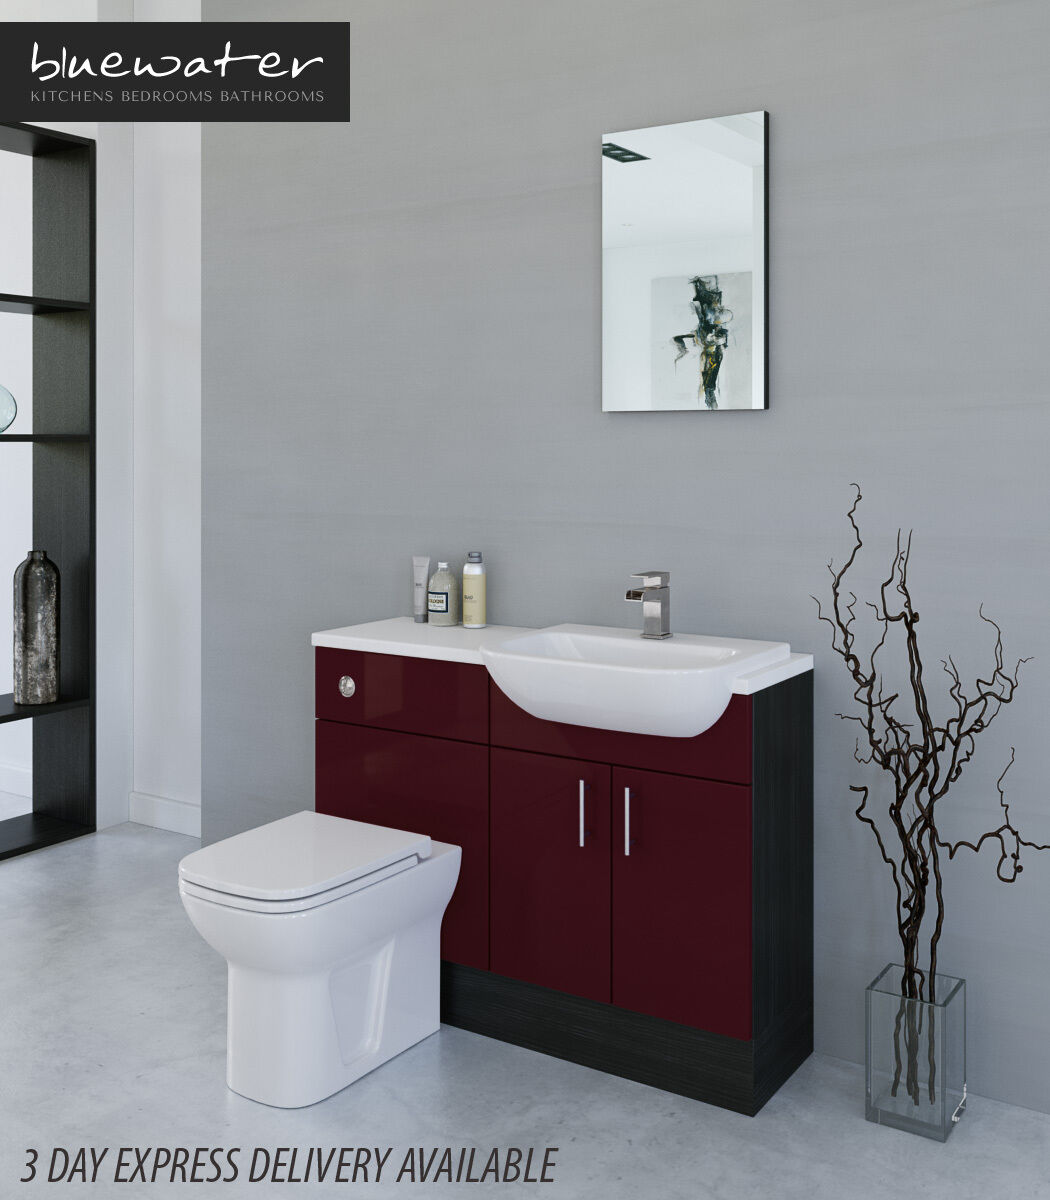 Fitted Bathroom Furniture Manufacturers: BURGUNDY / HACIENDA BLACK BATHROOM FITTED FURNITURE 1100MM